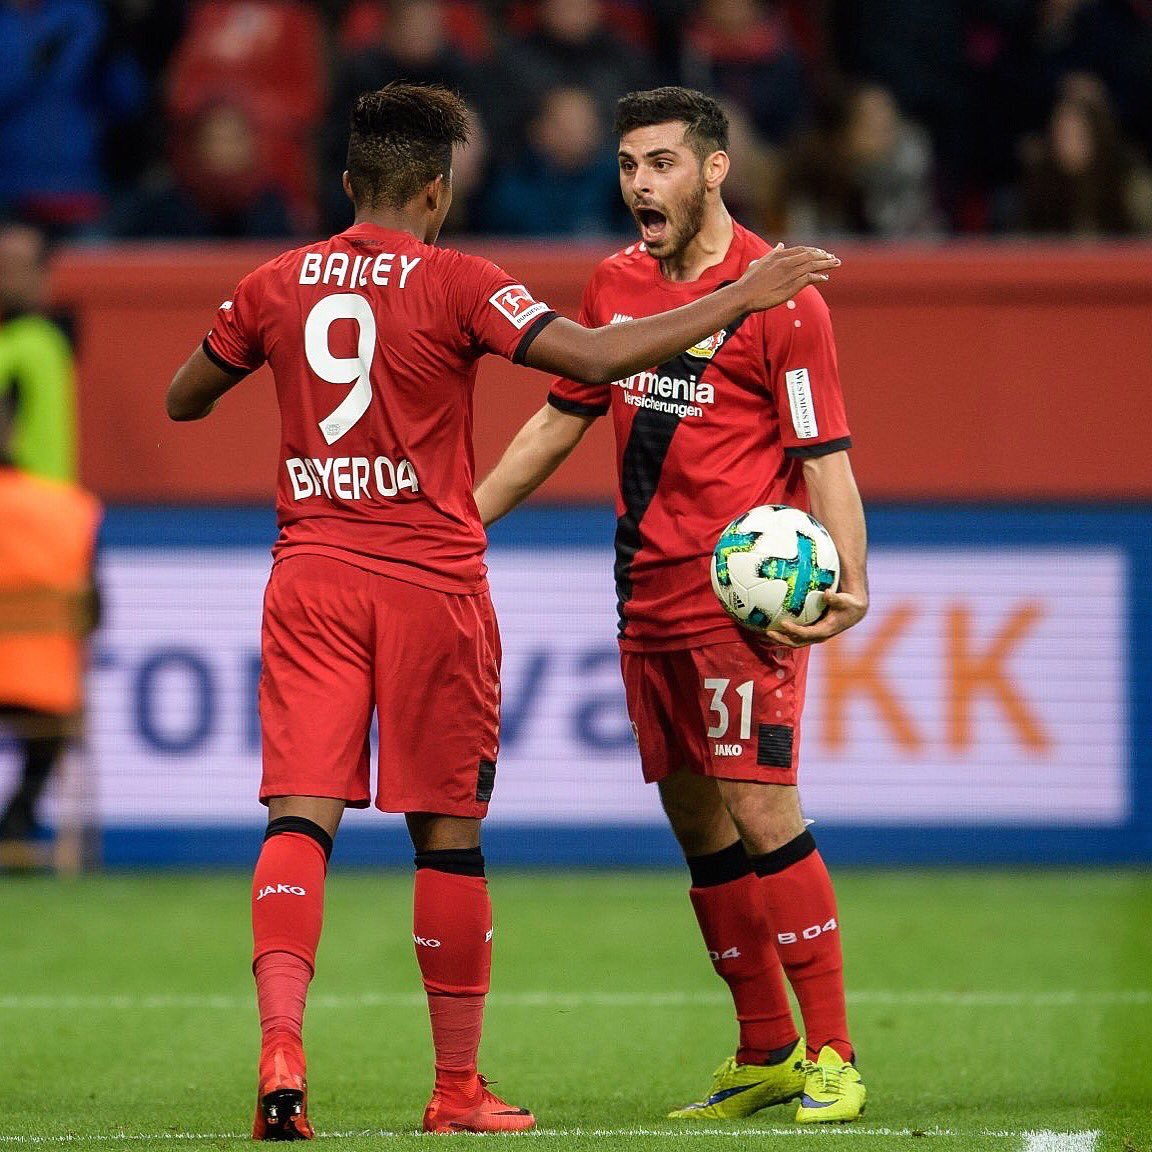 About yesterday's game. ⚽️👊🏾 @KeVolland https://t.co/hJovwNGyoH